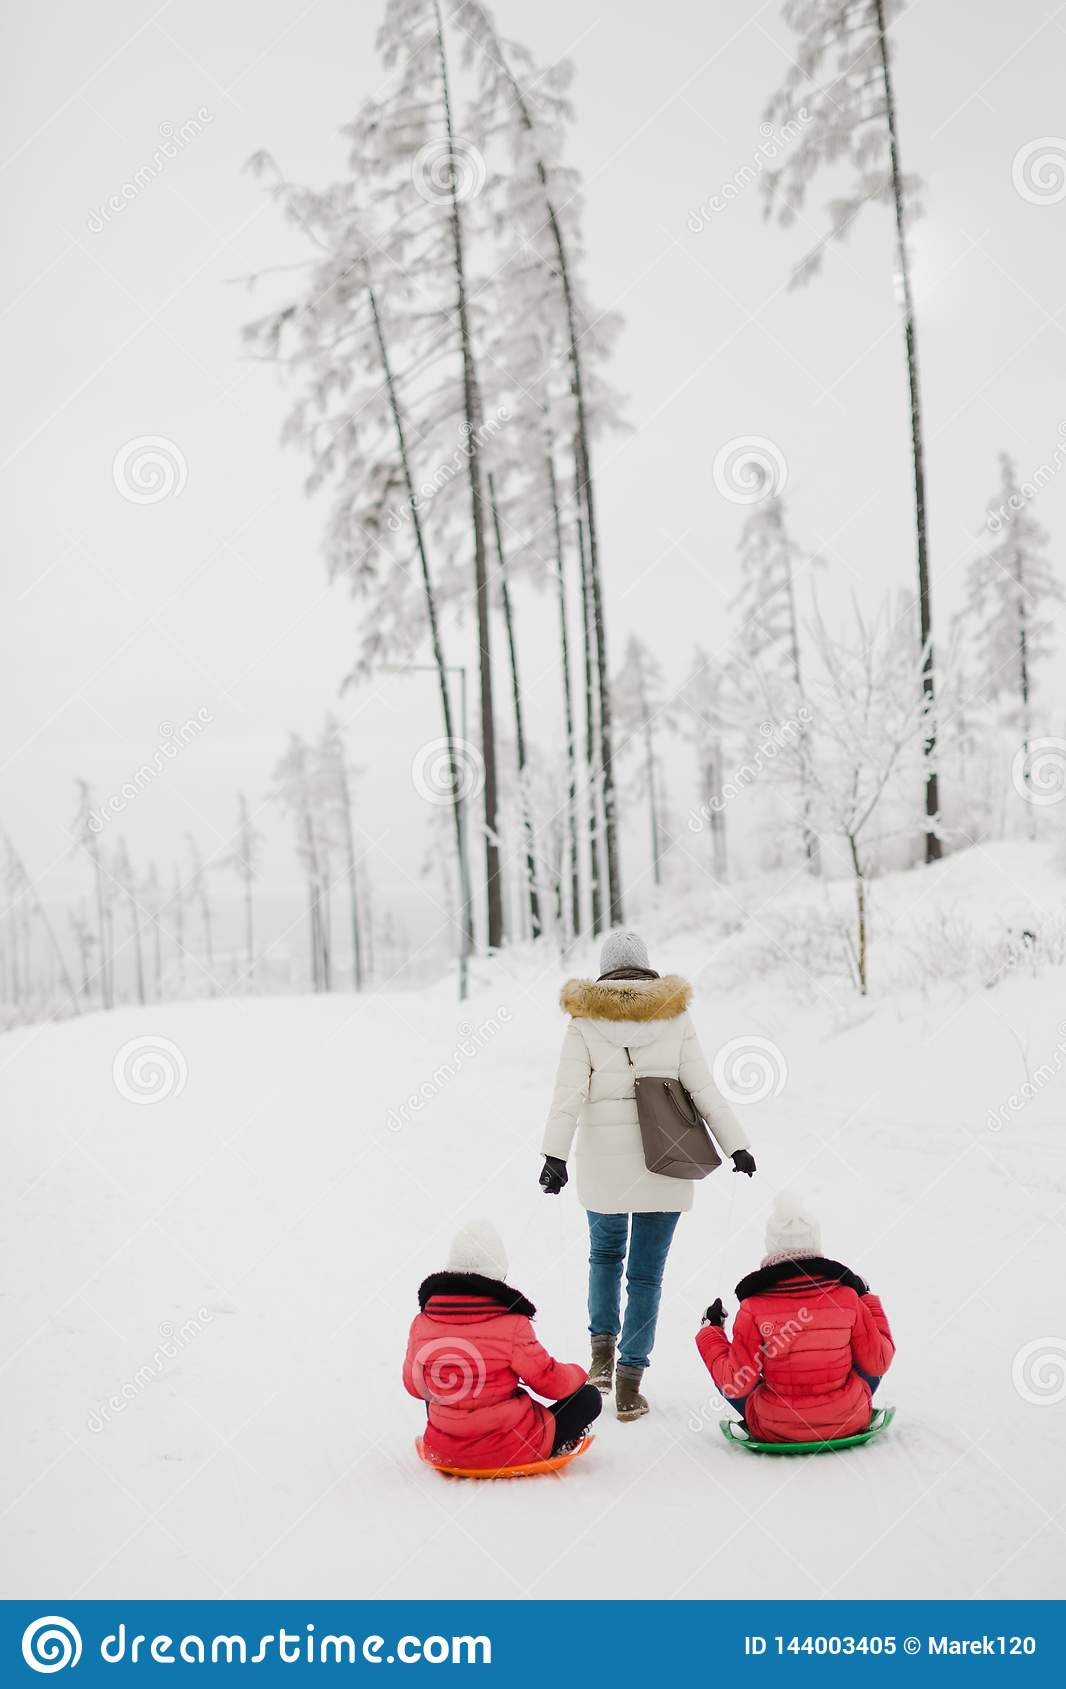 Mother is pulling her two daughters on sledge - winter day